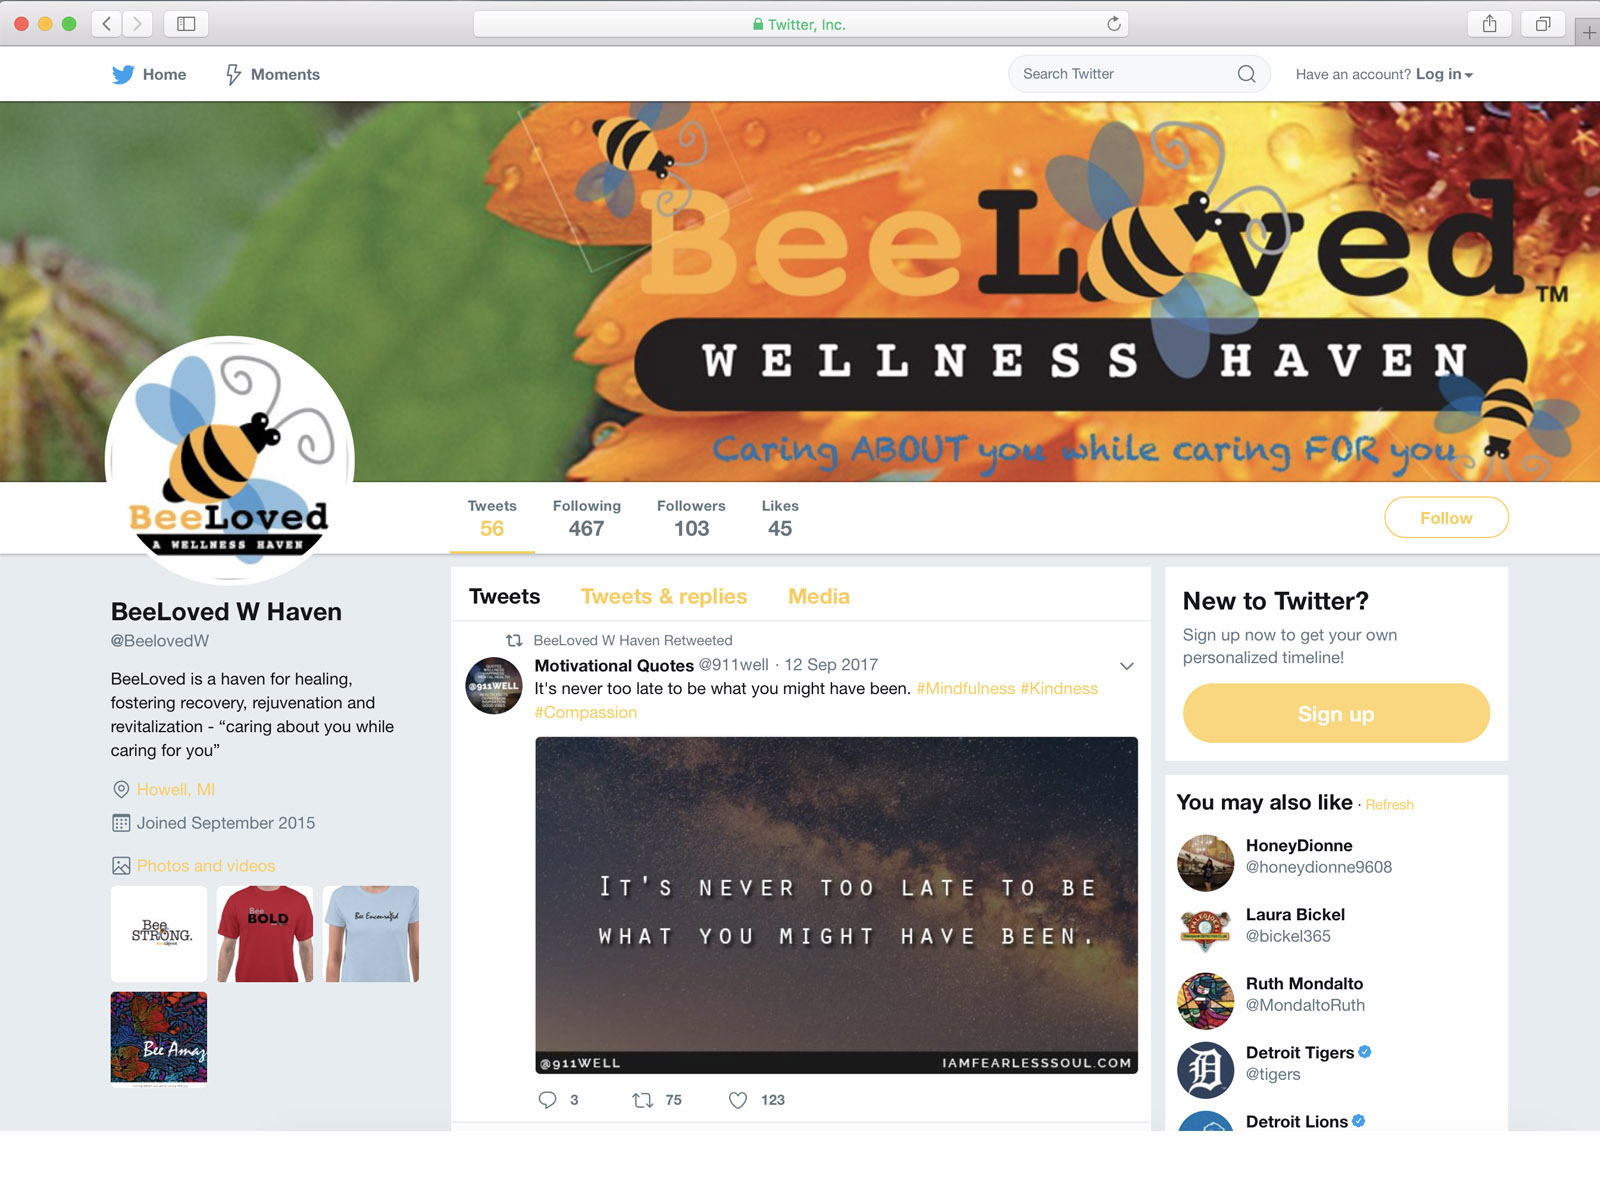 BeeLoved Twitter Page